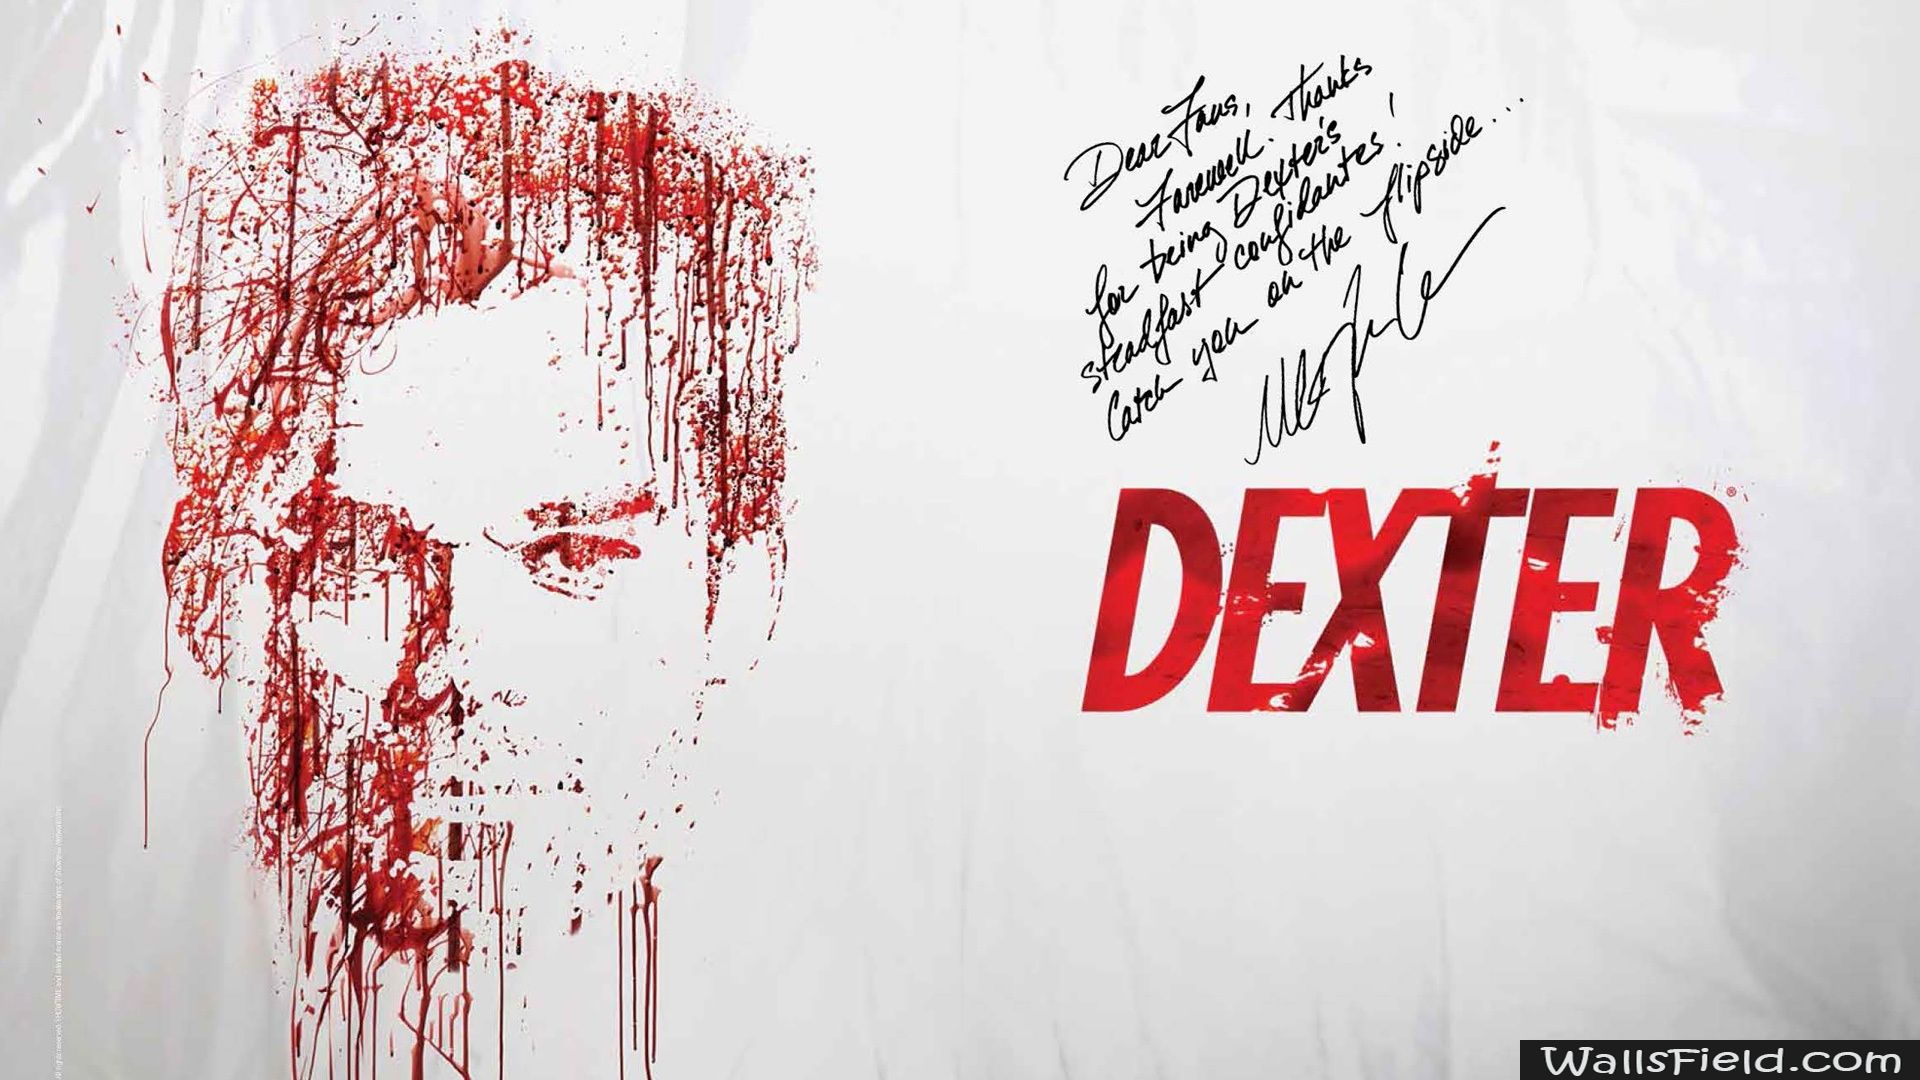 Dexter Quote Wallsfield Com Free Hd Wallpapers Dexter Wallpaper Dexter Quotes Dexter